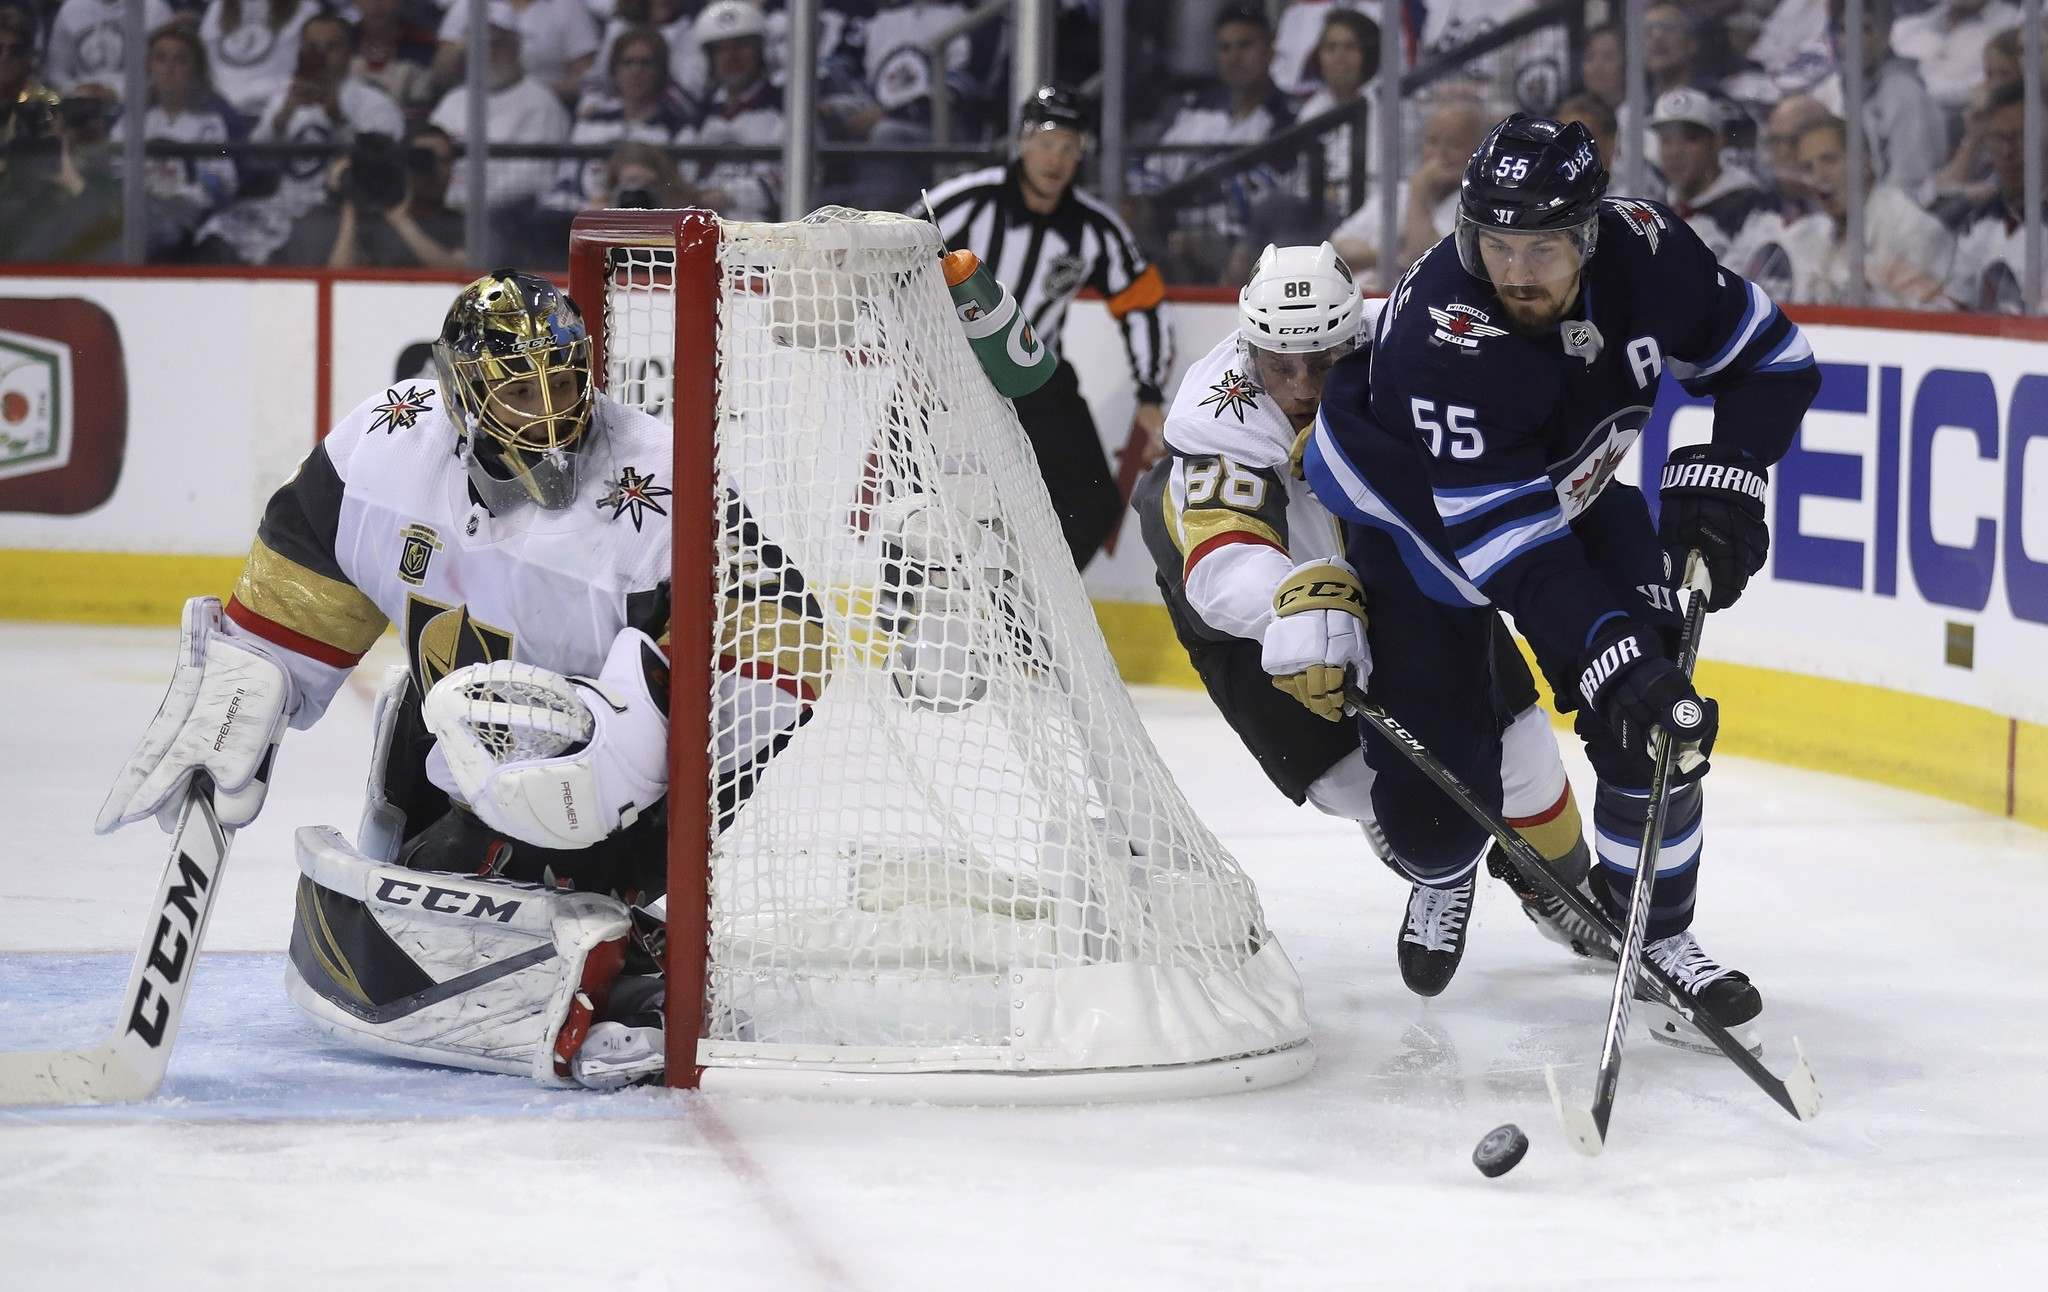 <p>Winnipeg Jets&#39; Mark Scheifele drives behind Vegas Golden Knights&#39; goaltender Marc-Andre Fleury with Nate Schmidt trailing behind during the second period.</p>